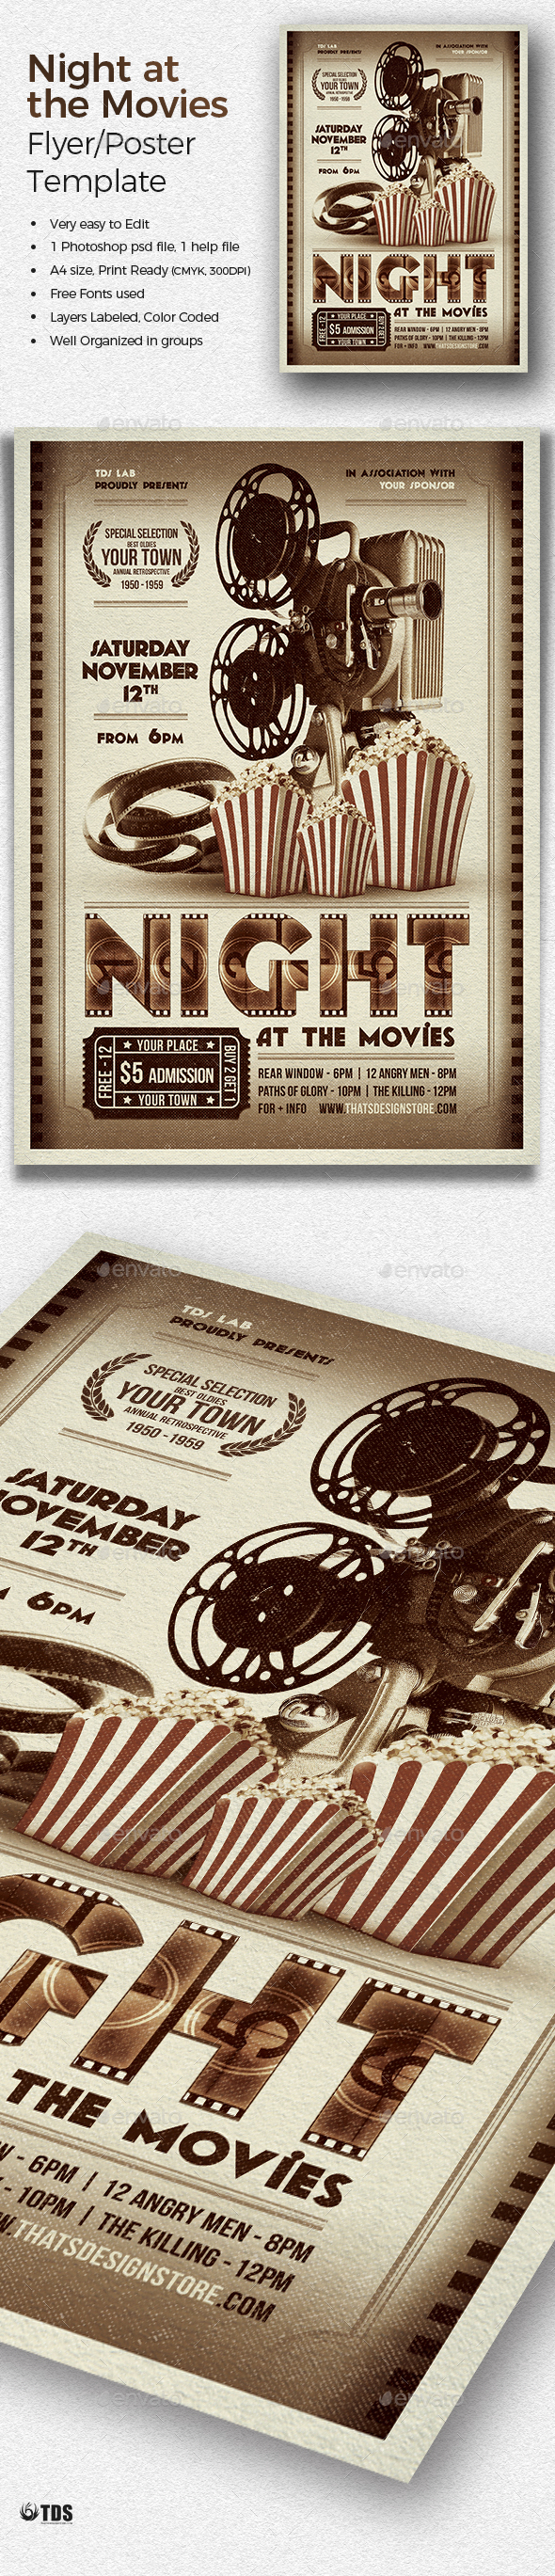 Night at the Movies Flyer Template - Miscellaneous Events